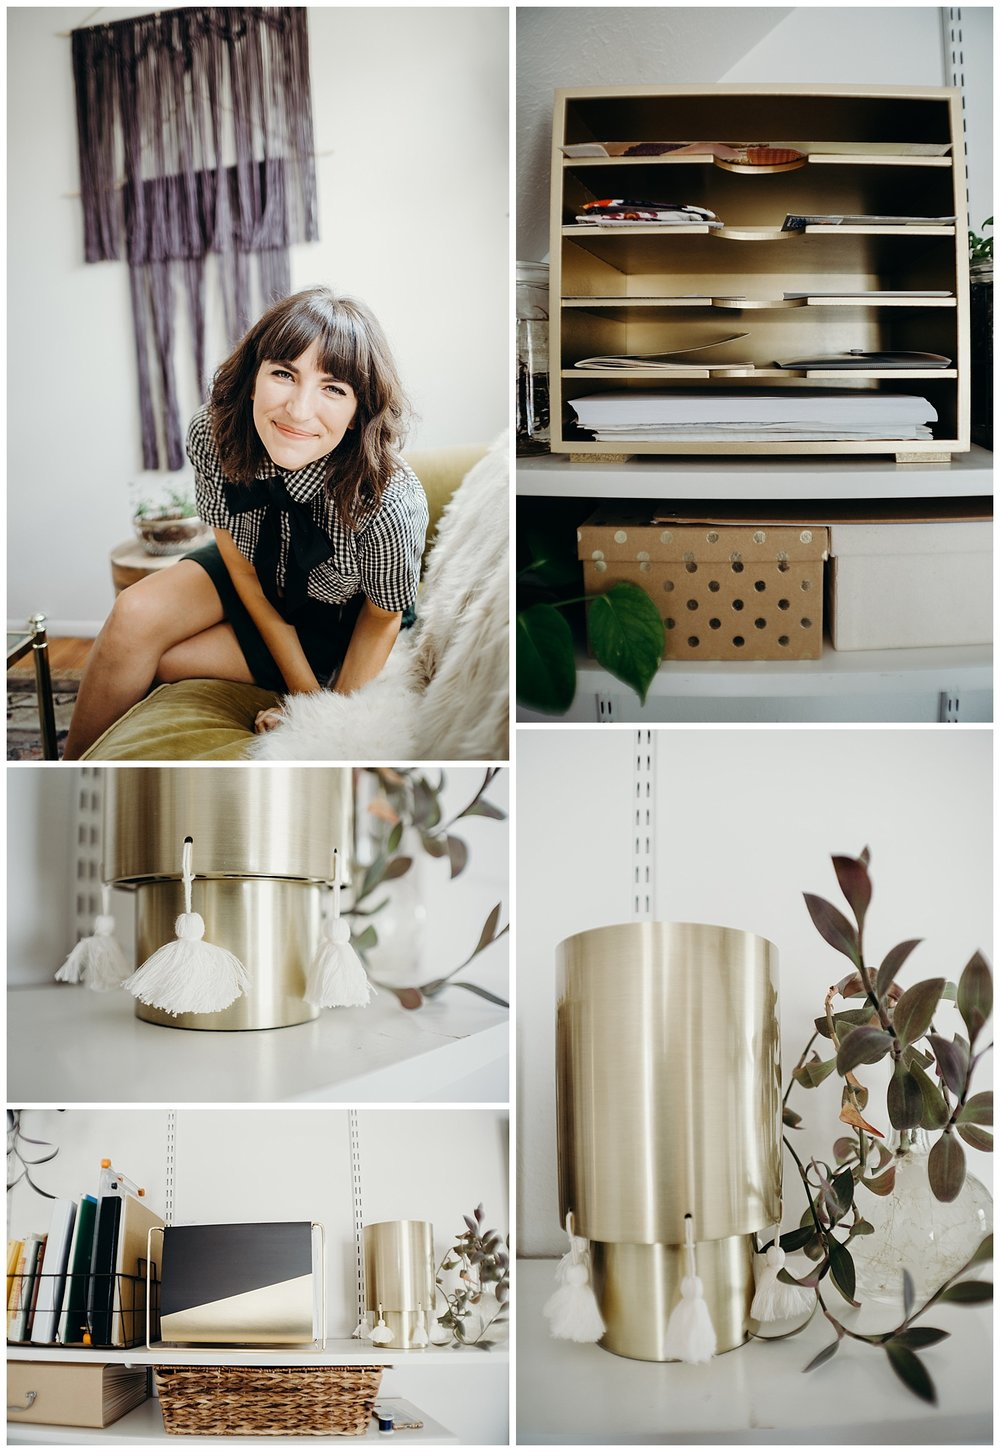 Target Nate Burkus Lamp in Home Office Tour for Stacie Stine Lifestyle Blog